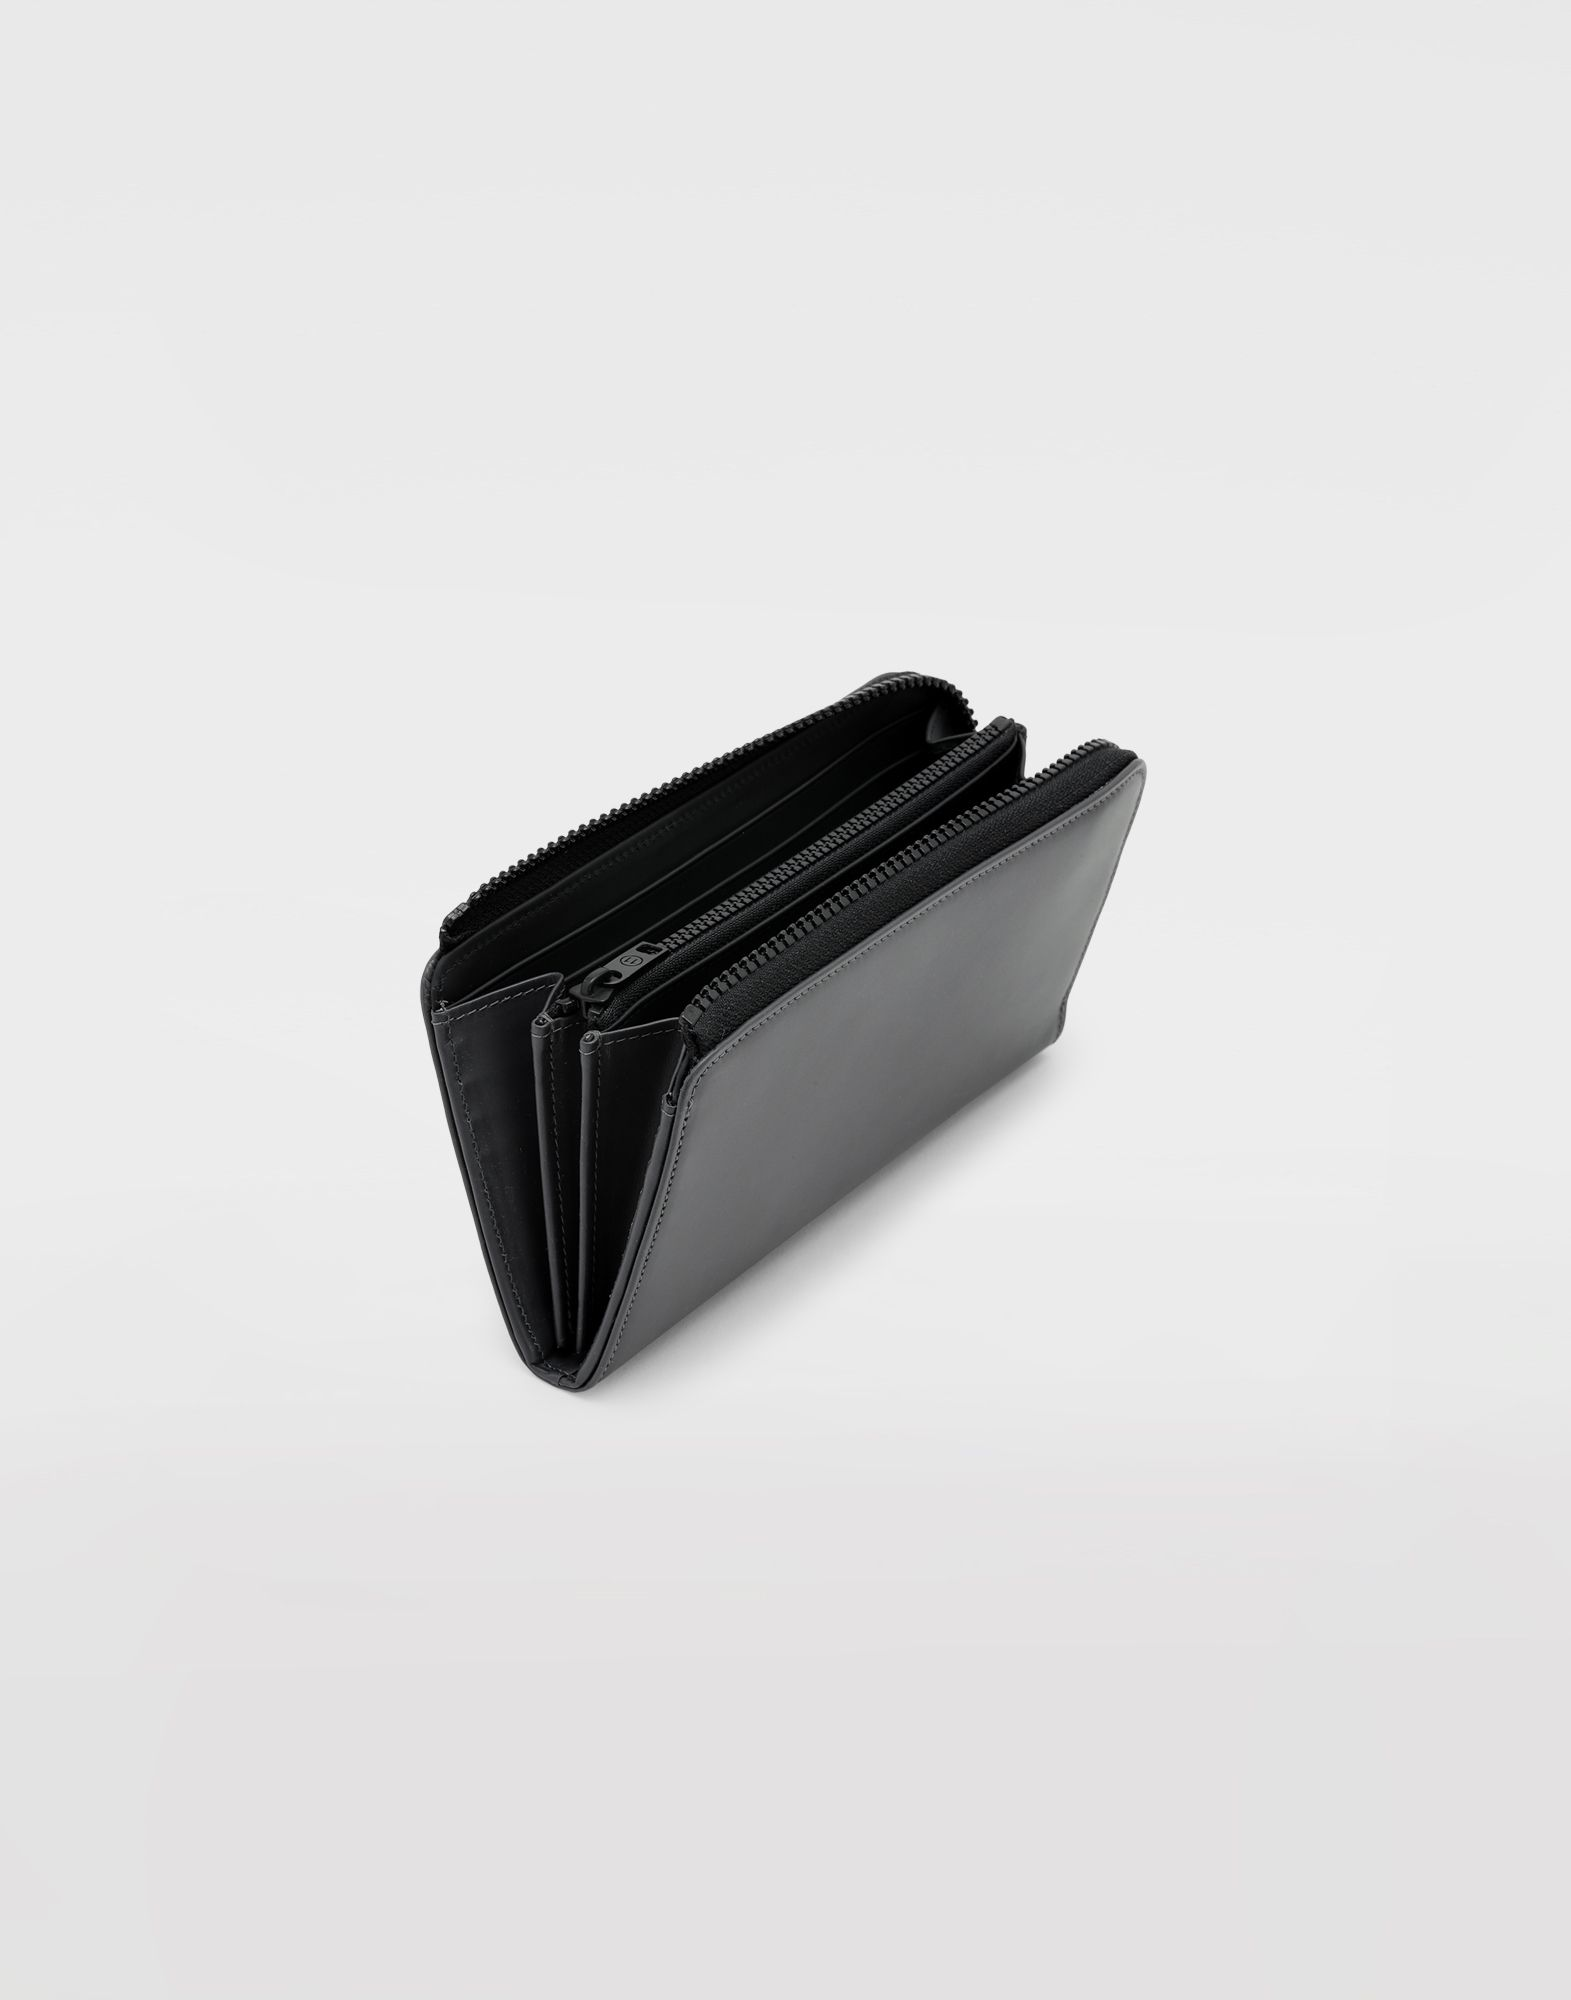 MAISON MARGIELA Leather zip wallet Wallets Man d